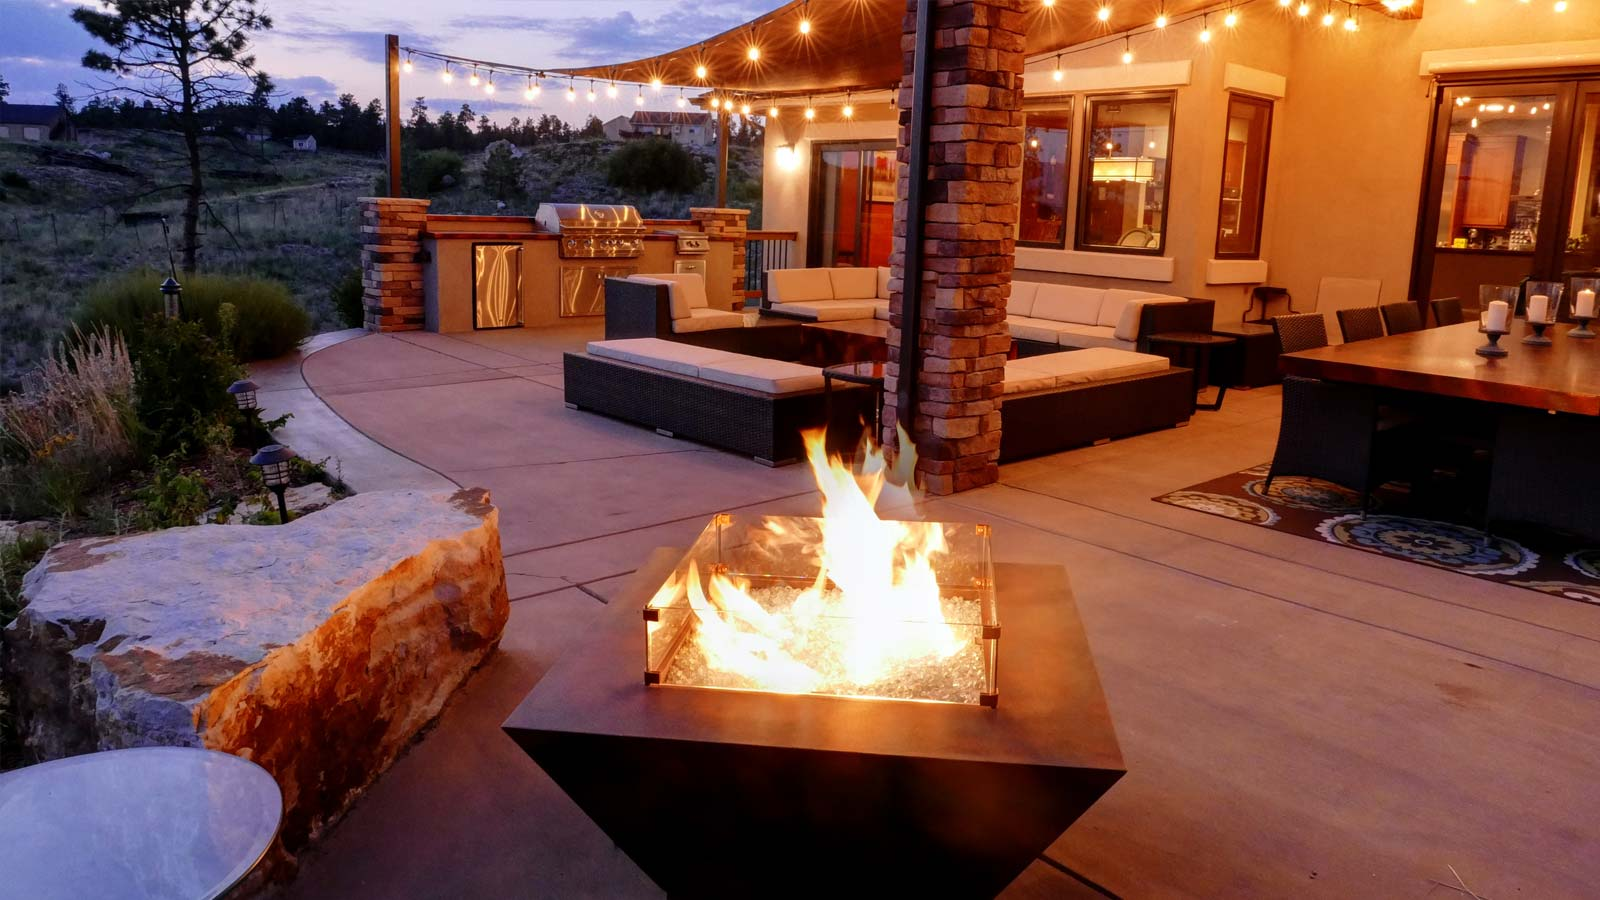 Fire pit designed with outdoor patio